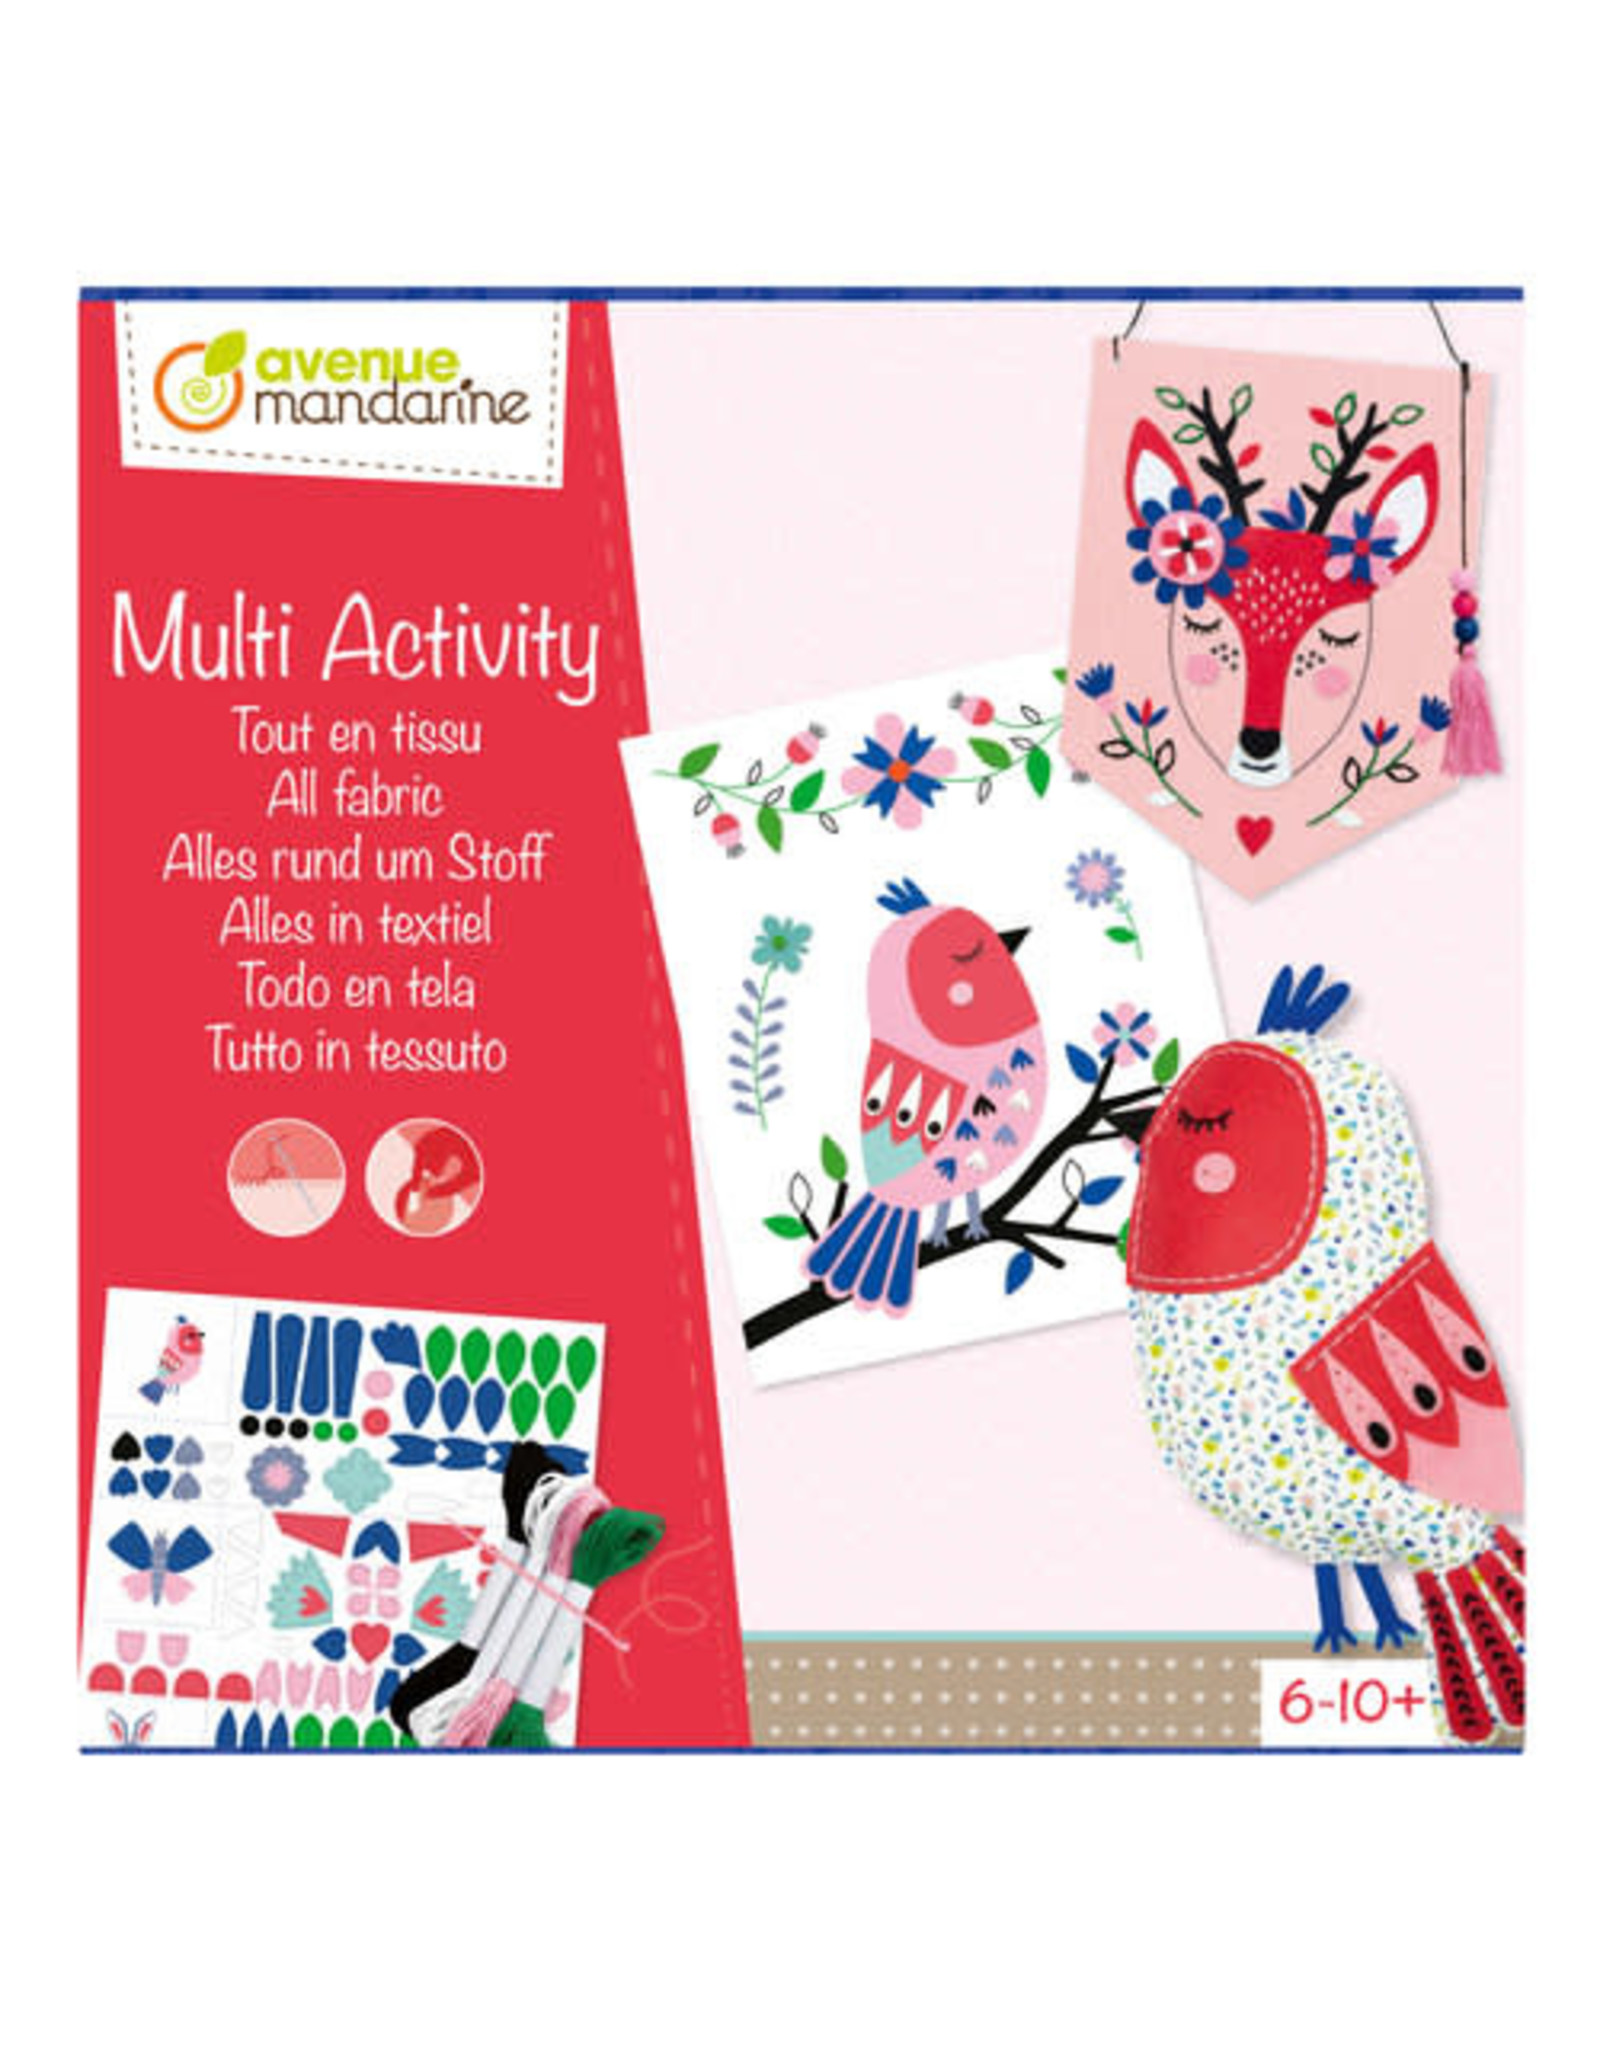 Avenue Mandarine Multi Activity Alles in Textiel